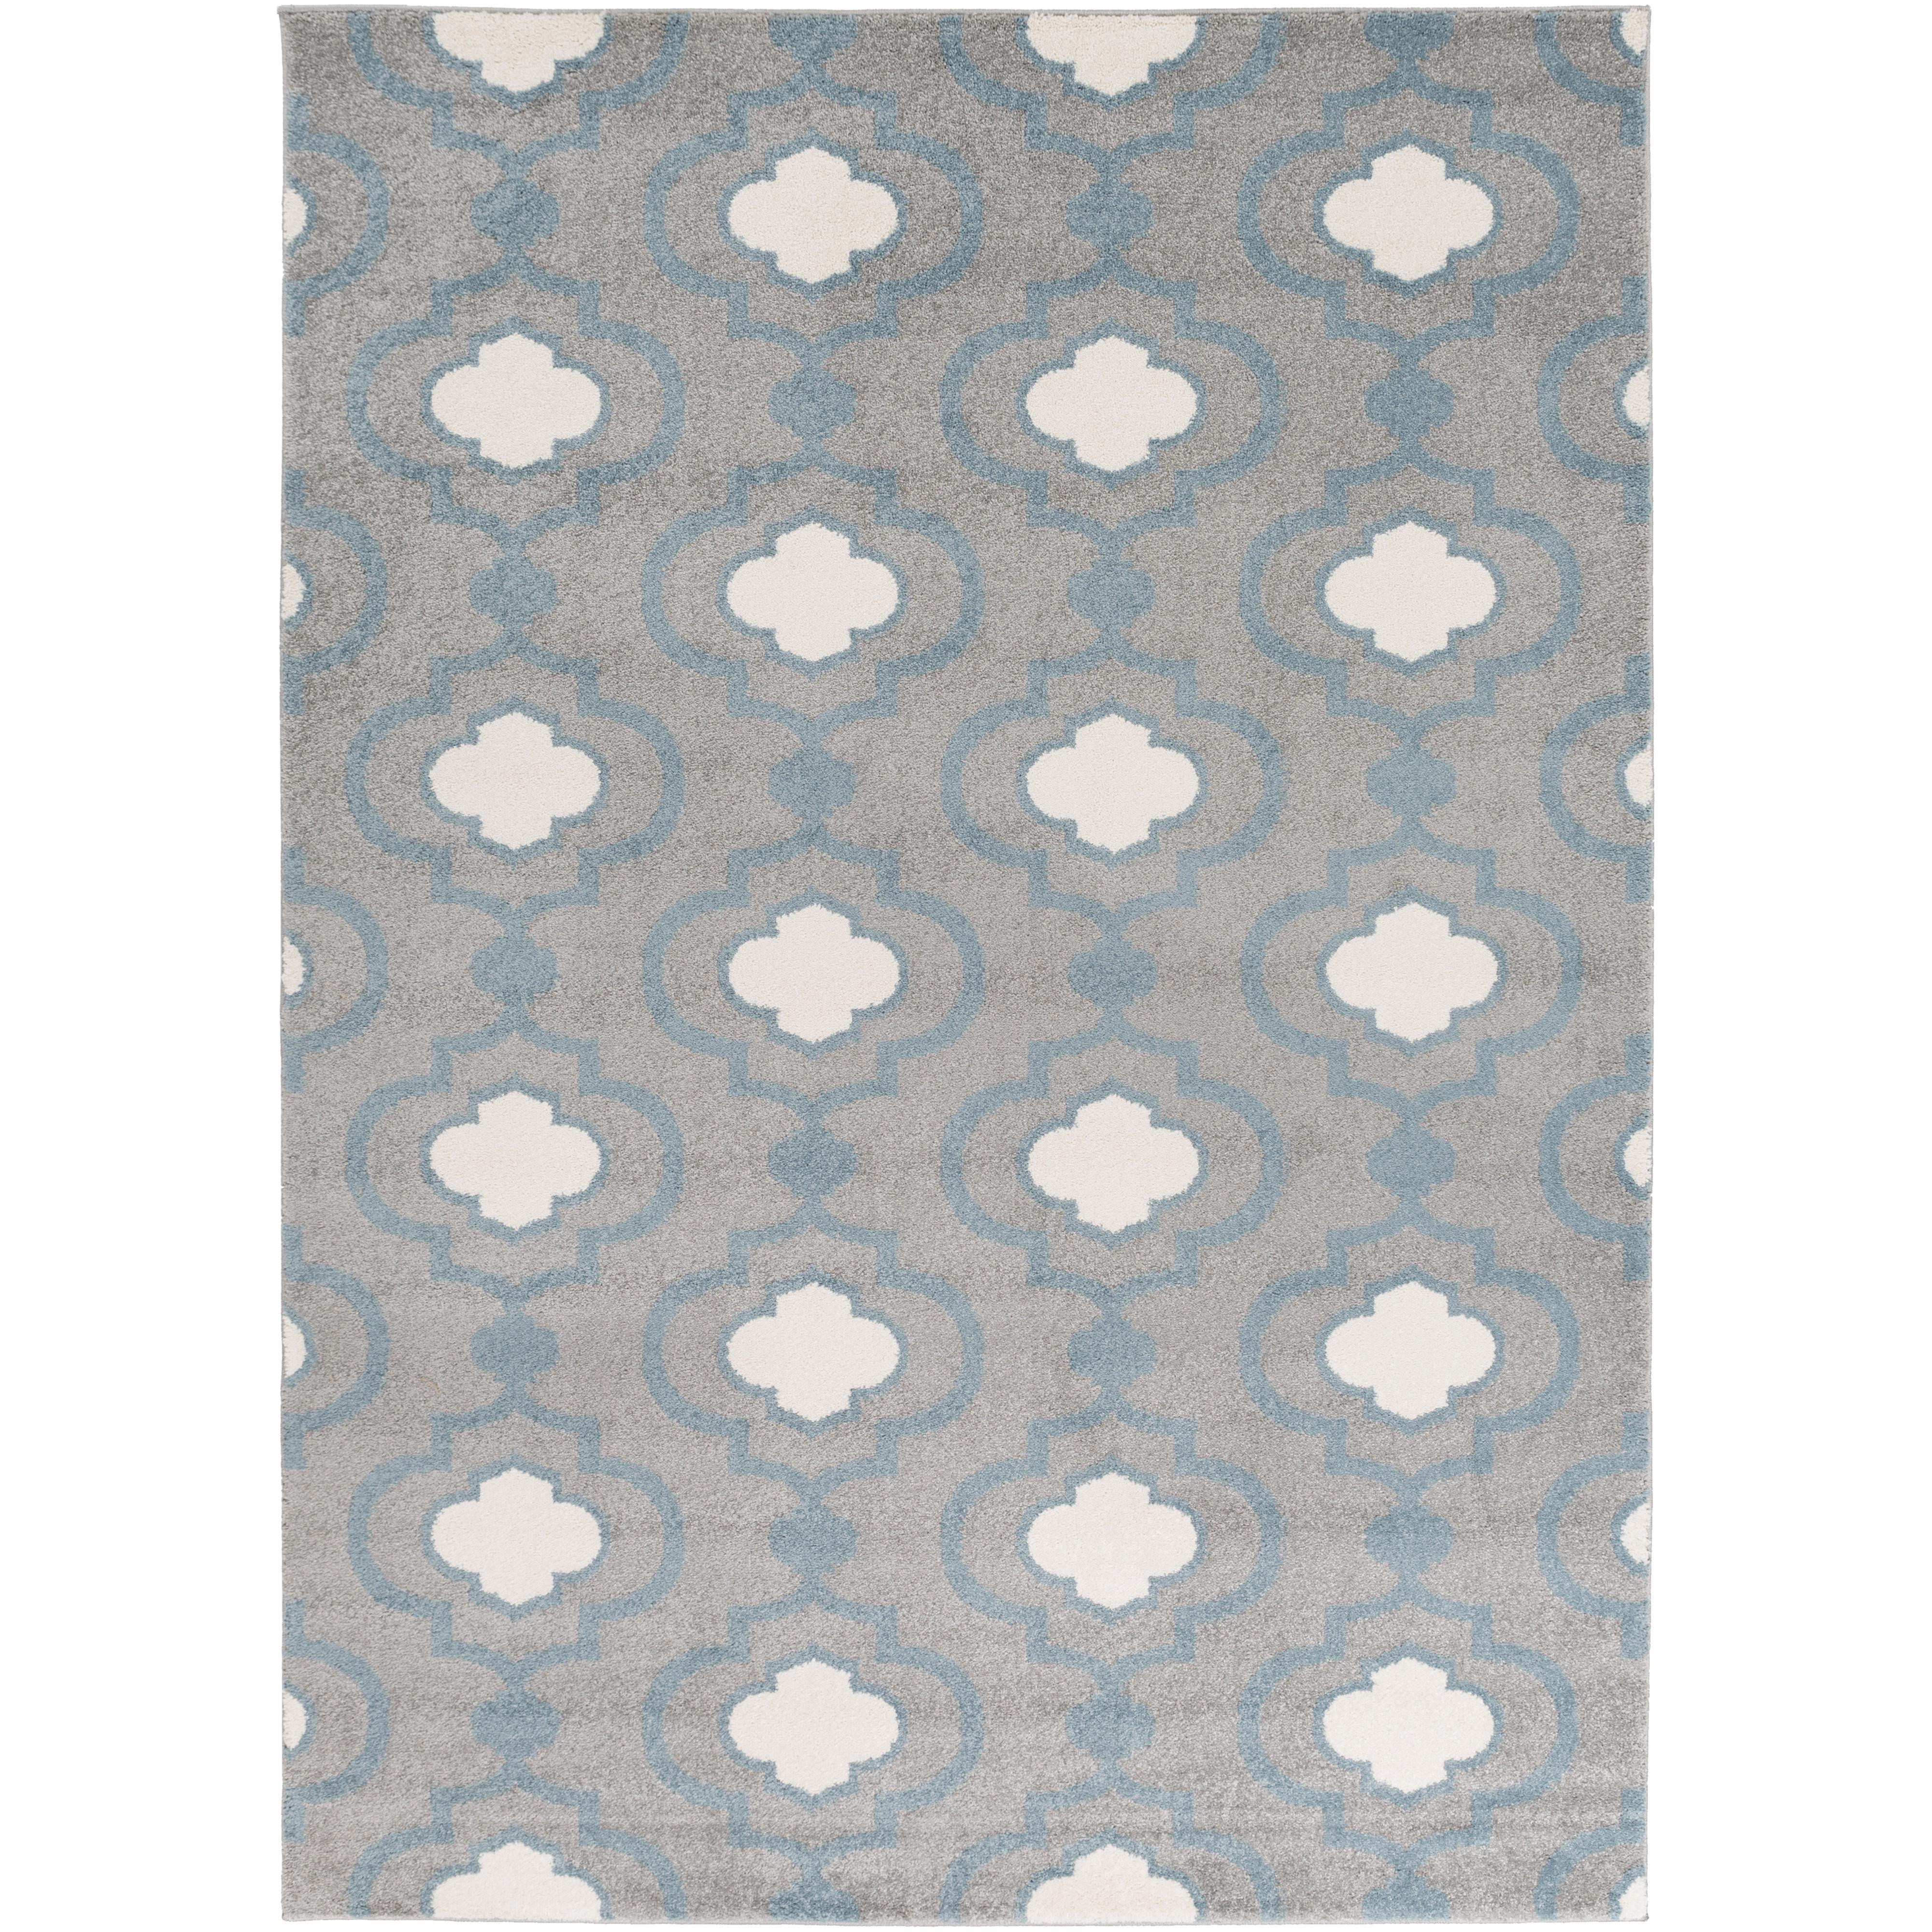 "Surya Rugs Horizon 6'7"" x 9'6"" - Item Number: HRZ1022-6796"